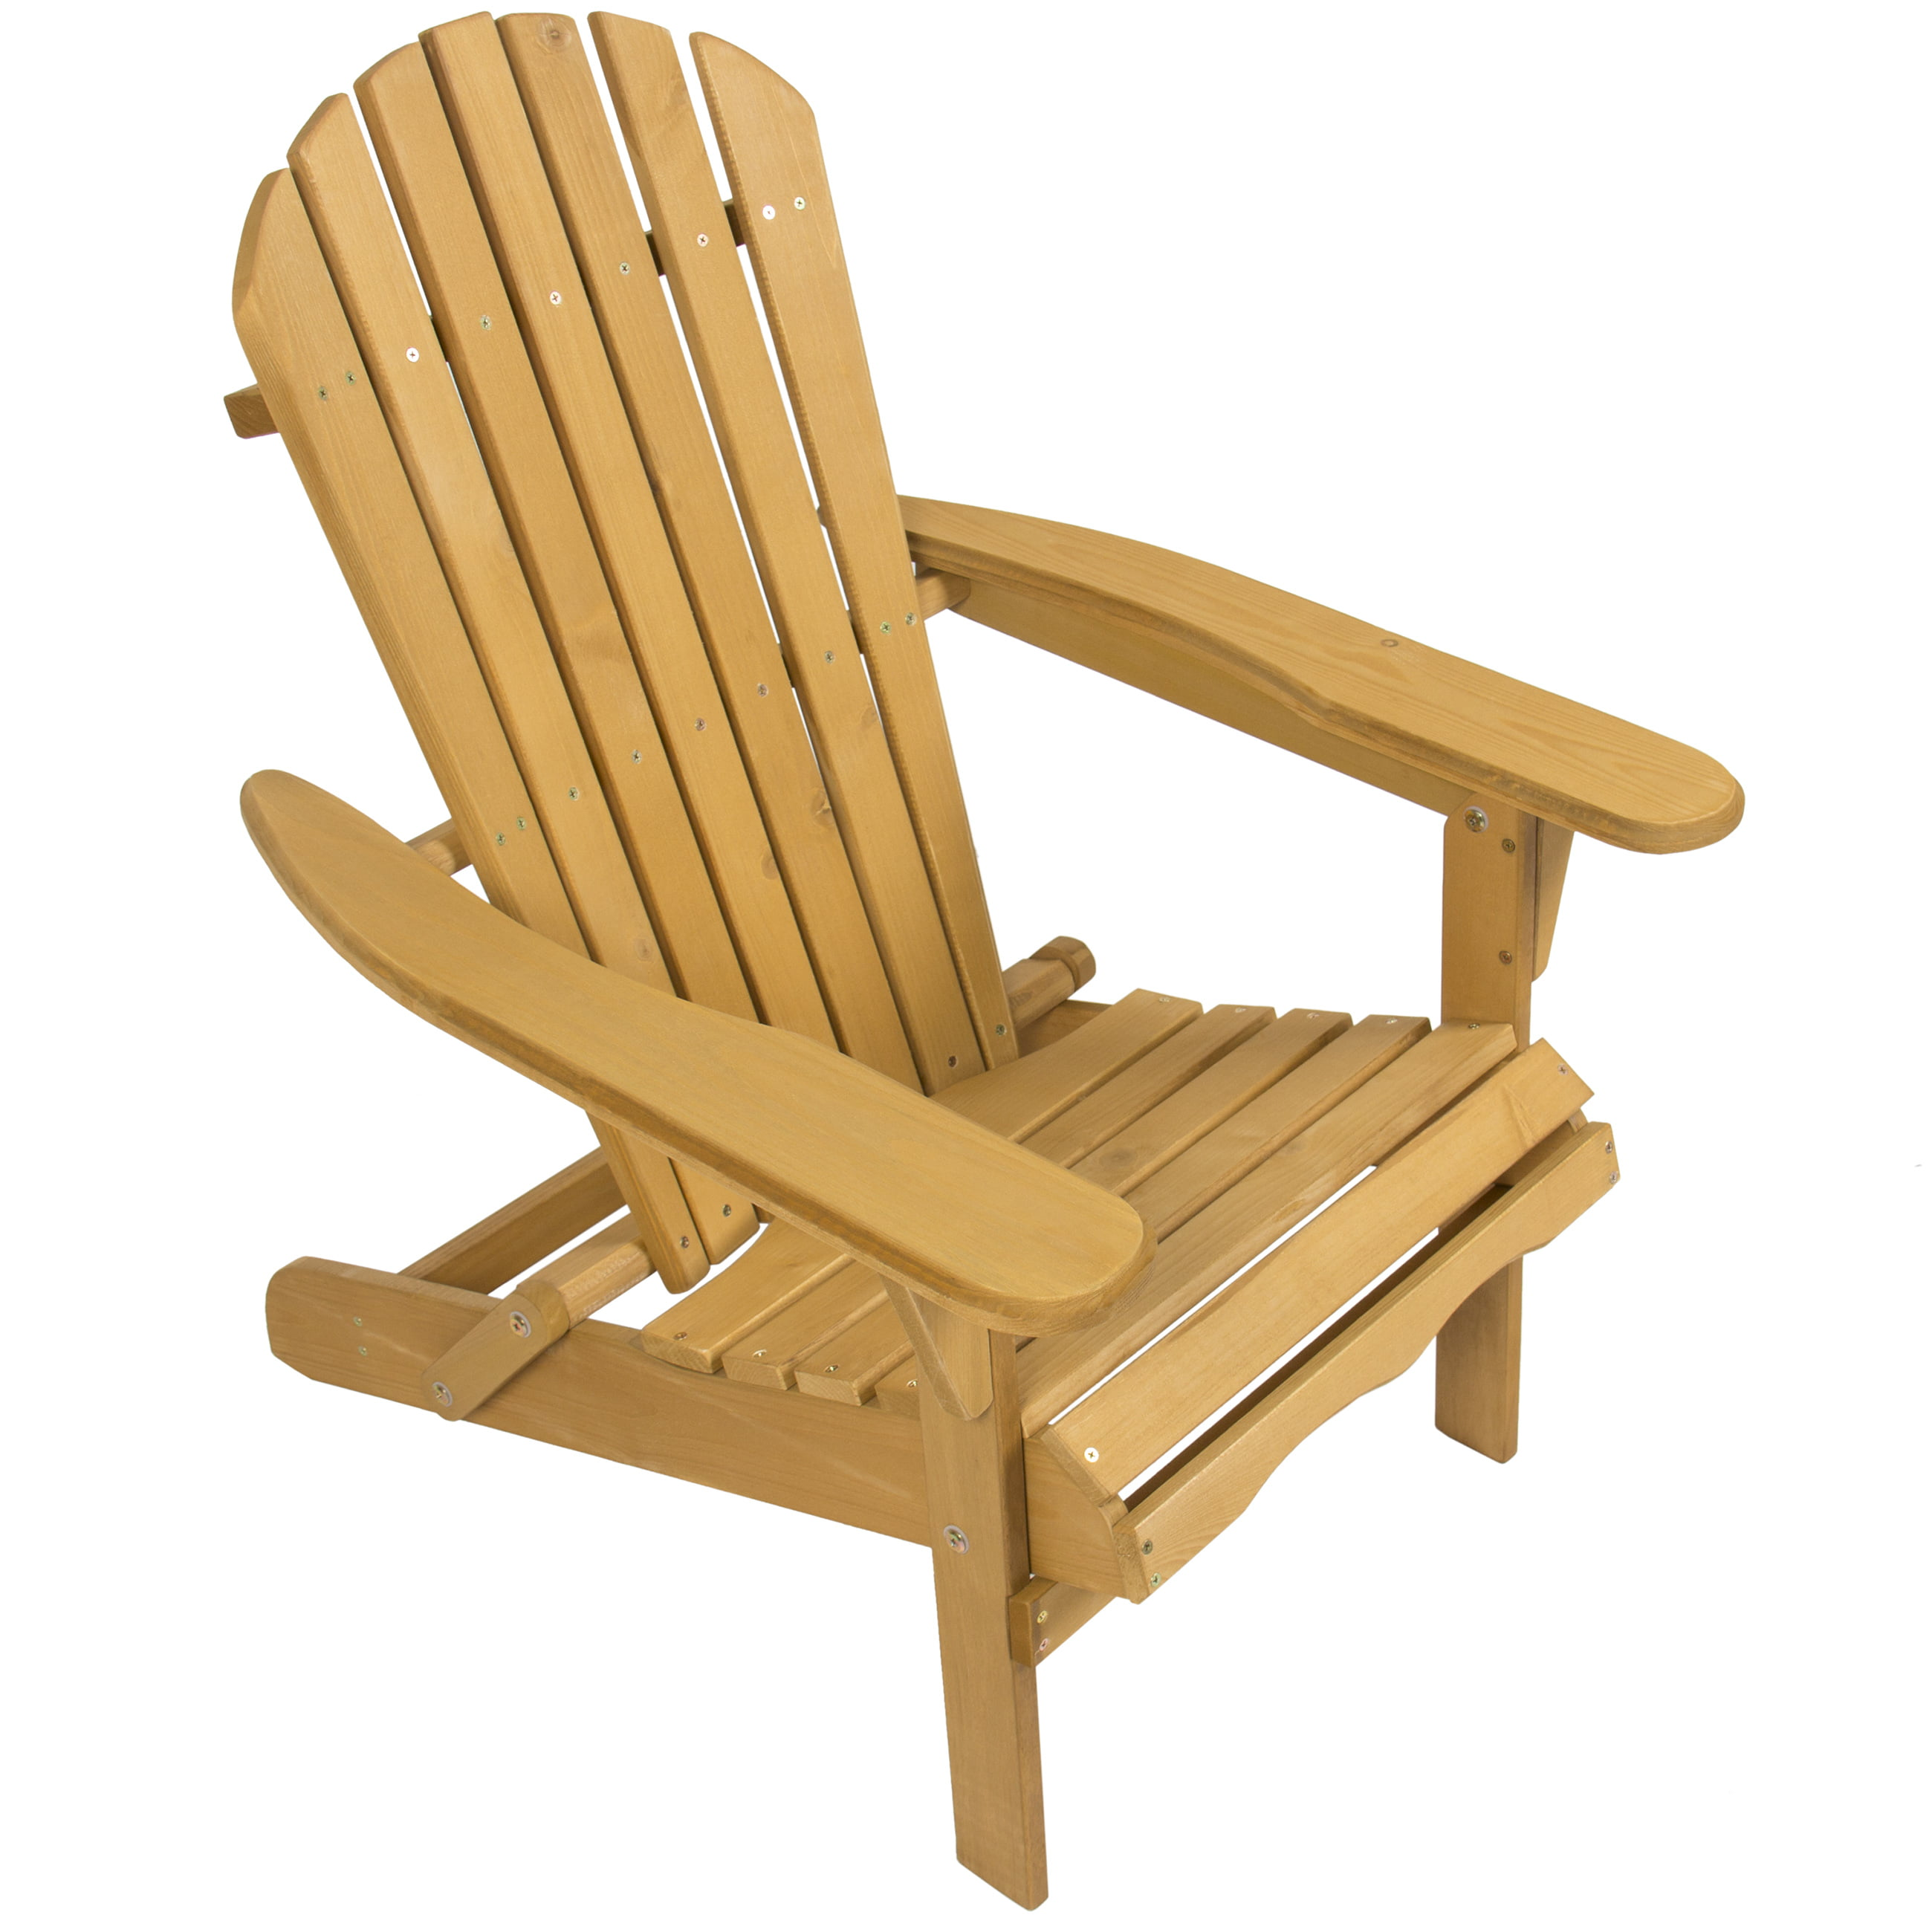 High Quality Best Choice Products Outdoor Wood Adirondack Chair Foldable Patio Lawn Deck  Garden Furniture   Walmart.com